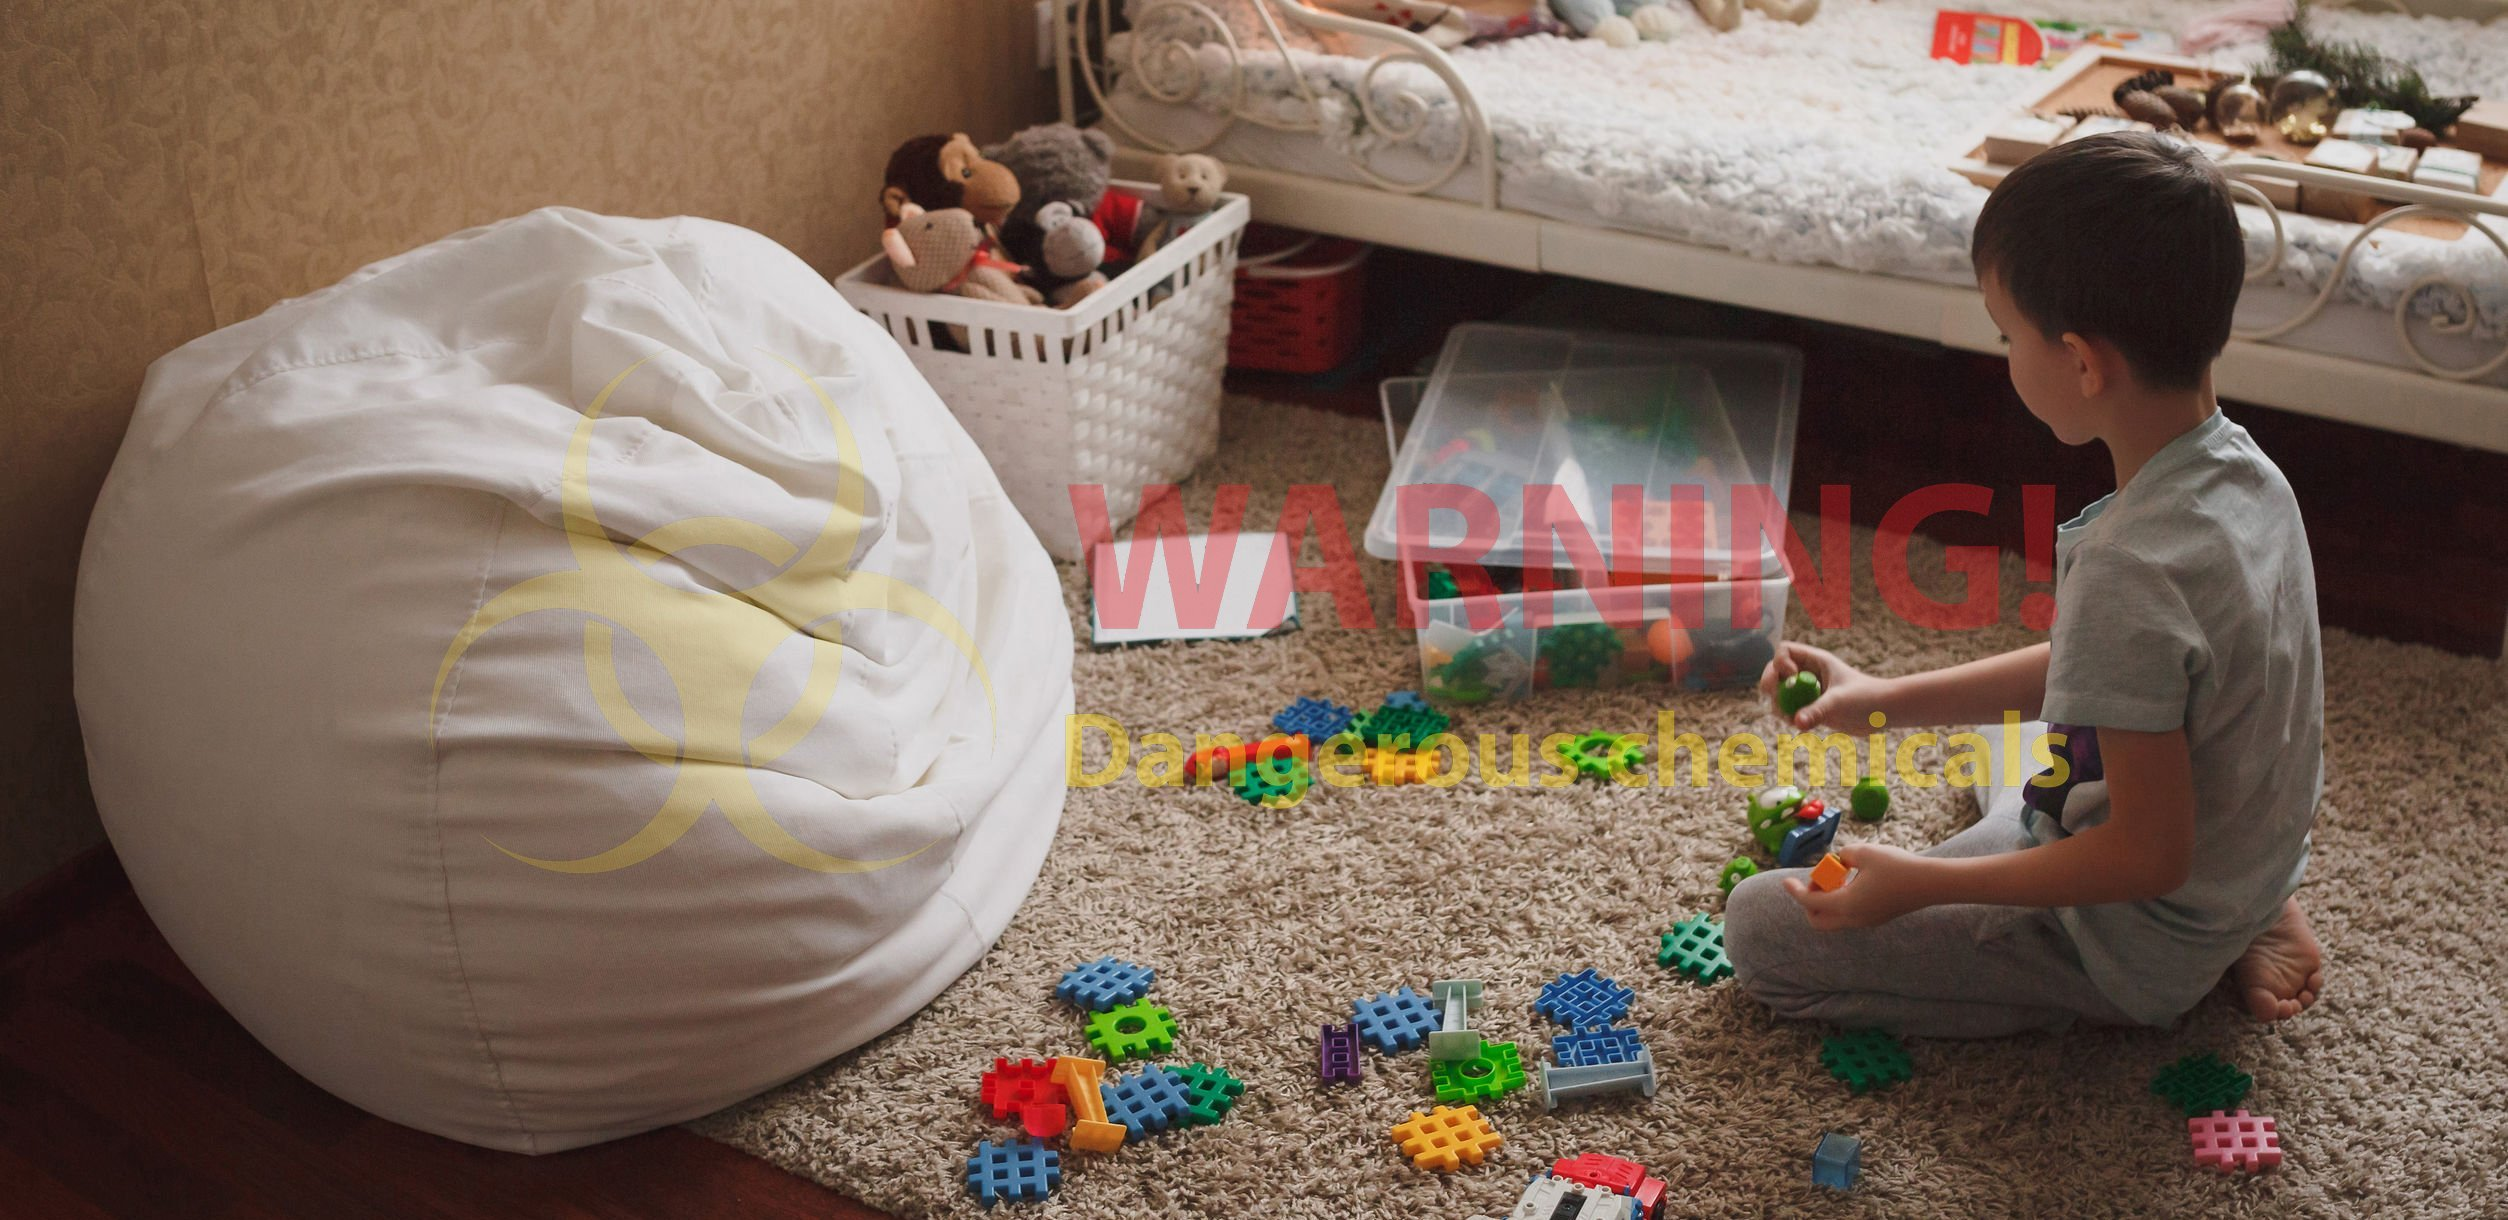 These Common Household Toxins are Poisoning Children